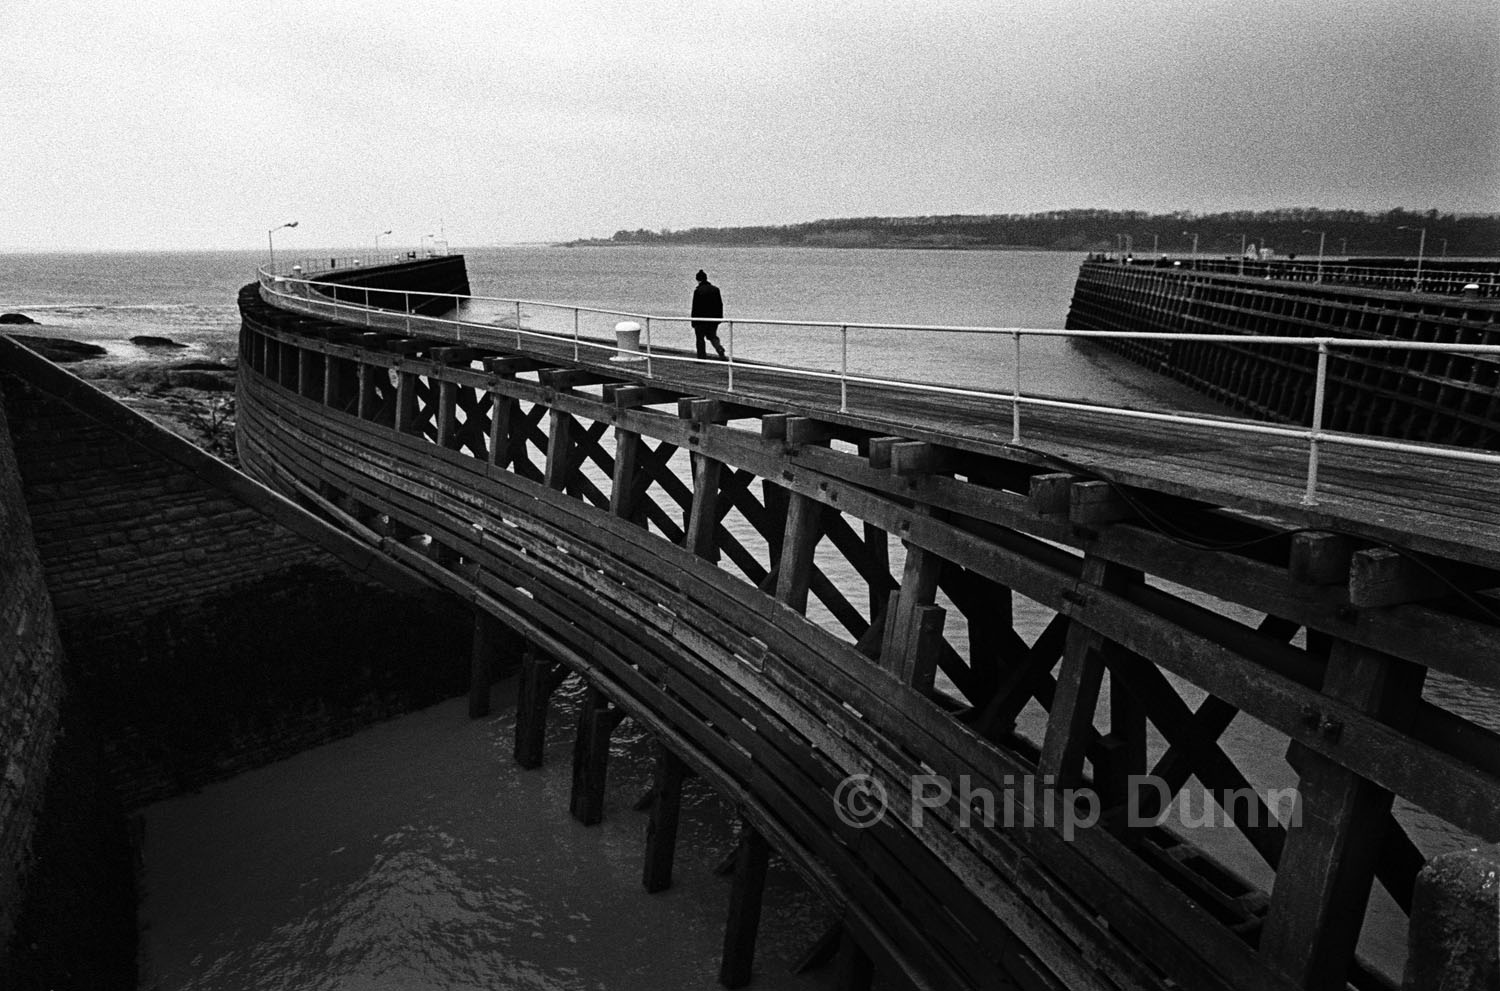 Man walks along the wooden pier in Sharpness monochrome image